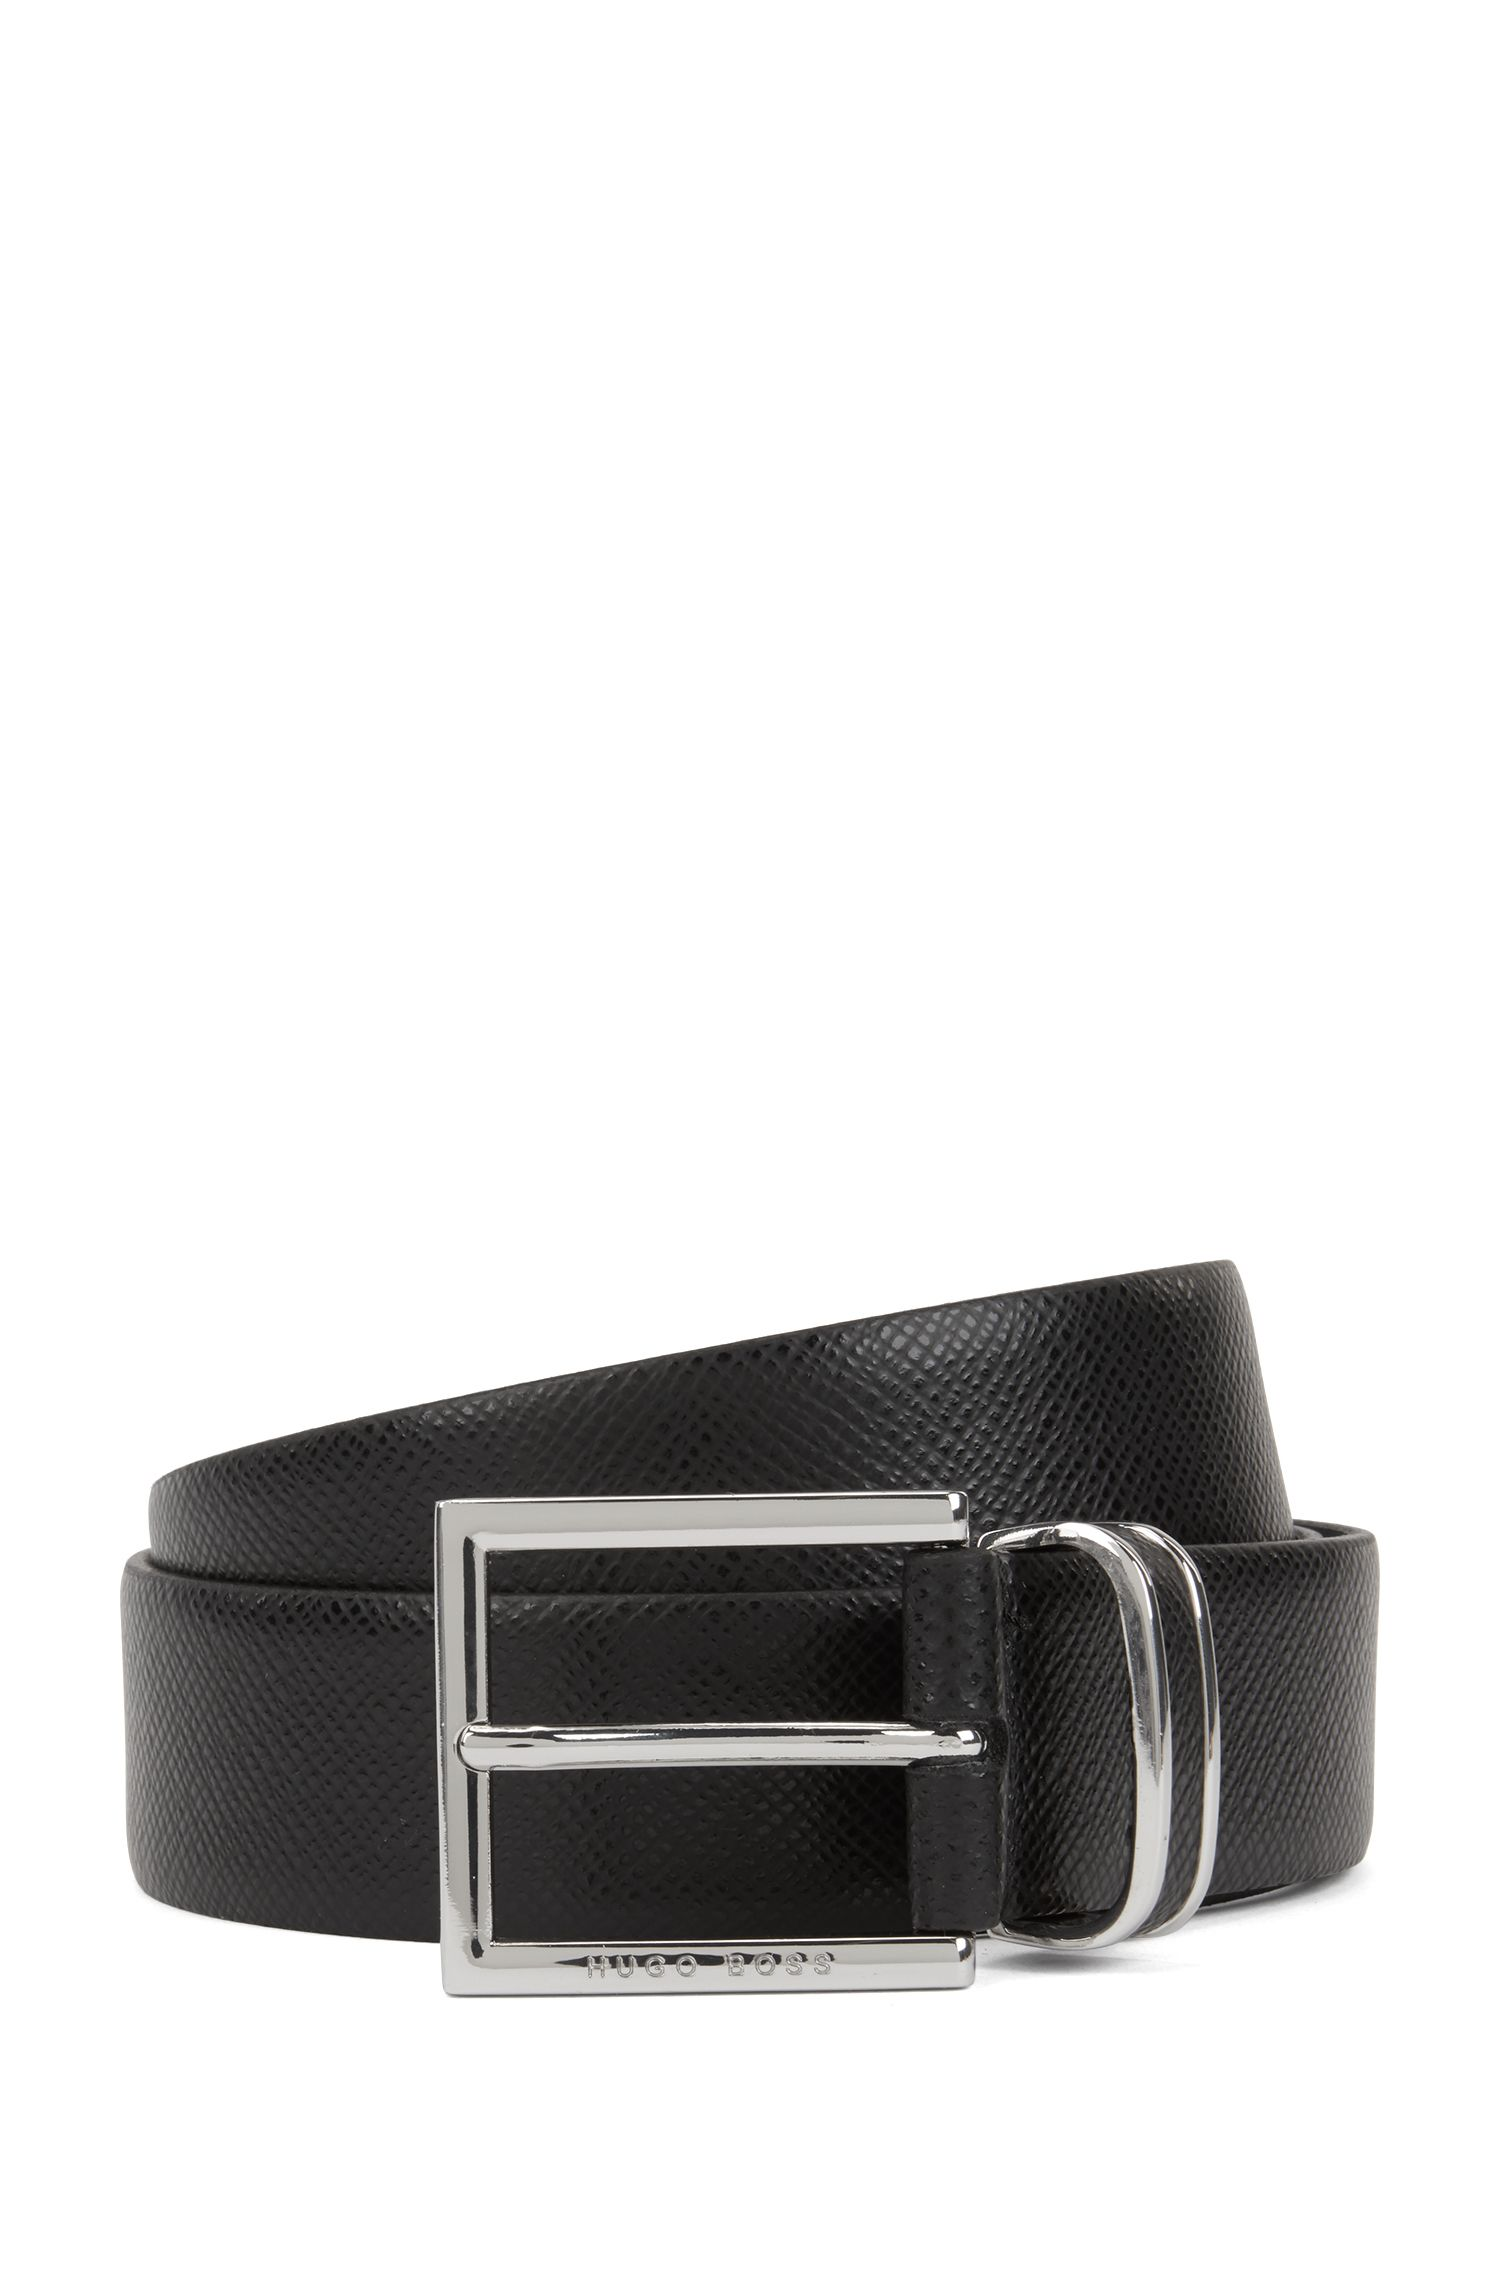 Signature Collection belt in embossed calf leather